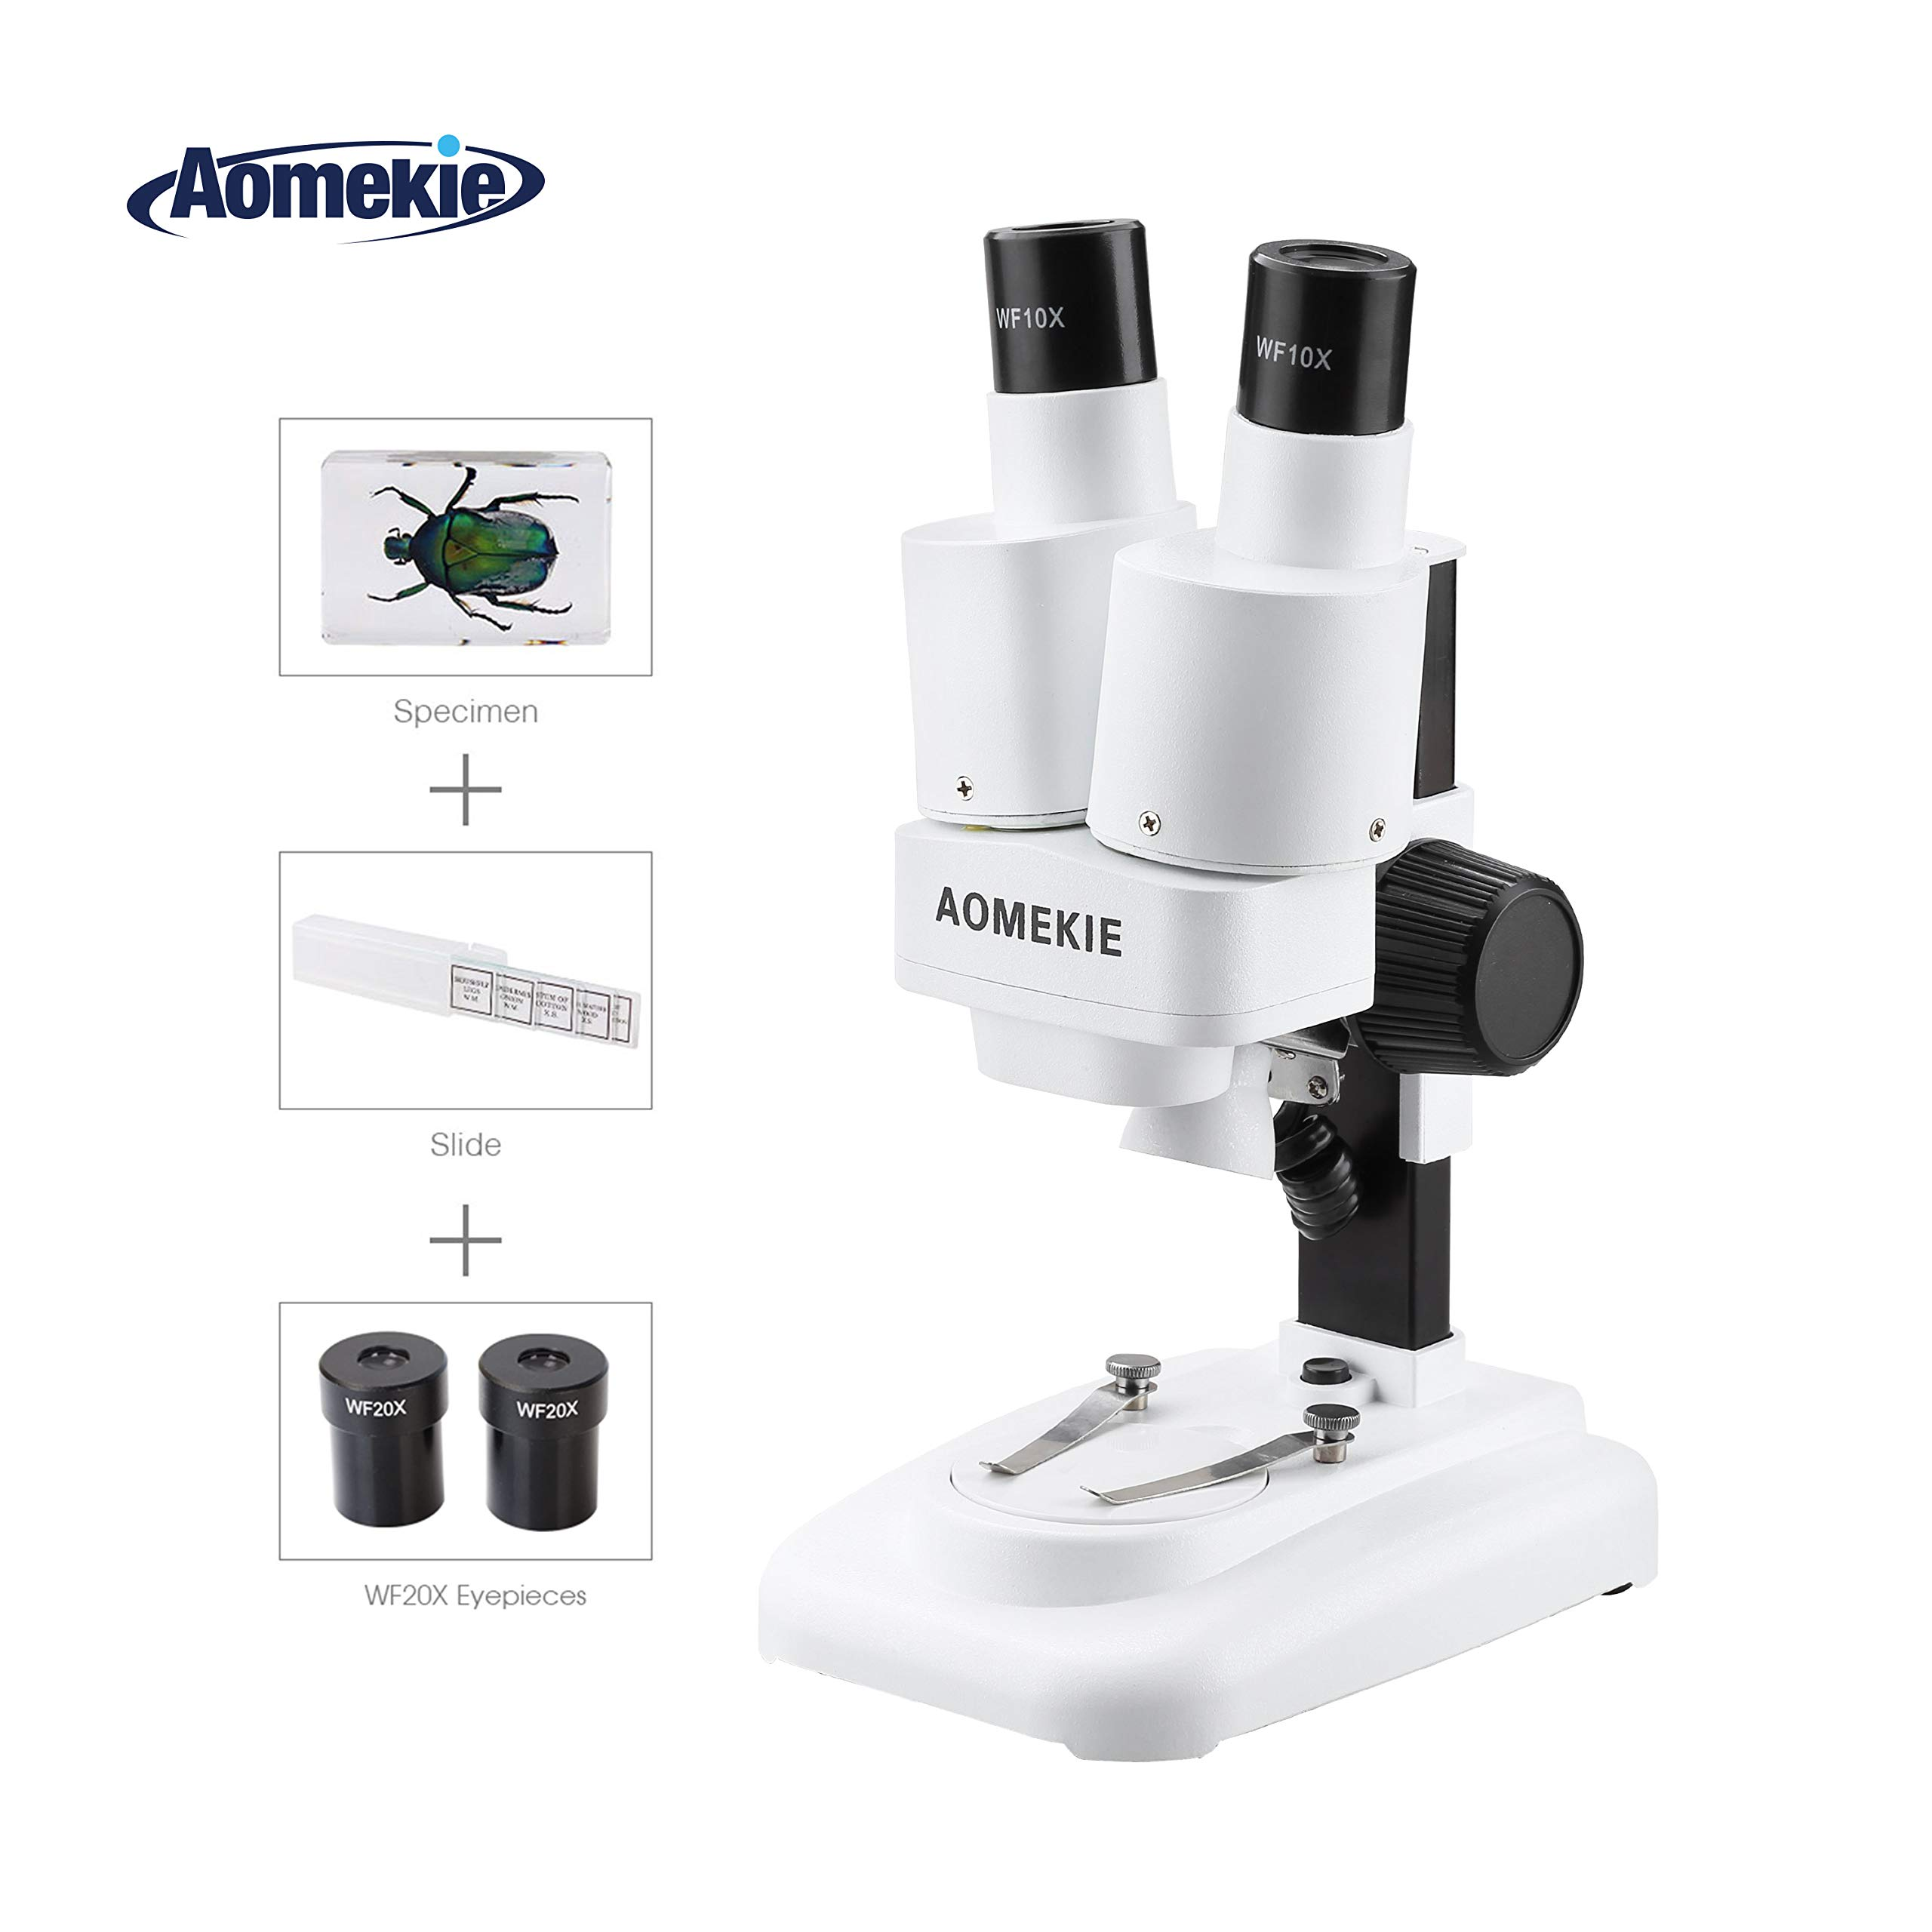 Aomekie Stereo Microscope 20-40X Microscopes for Kids Students with WF20x WF10x Eyepieces Insect Specimen 10 Slide Slides LED Light Source by AOMEKIE